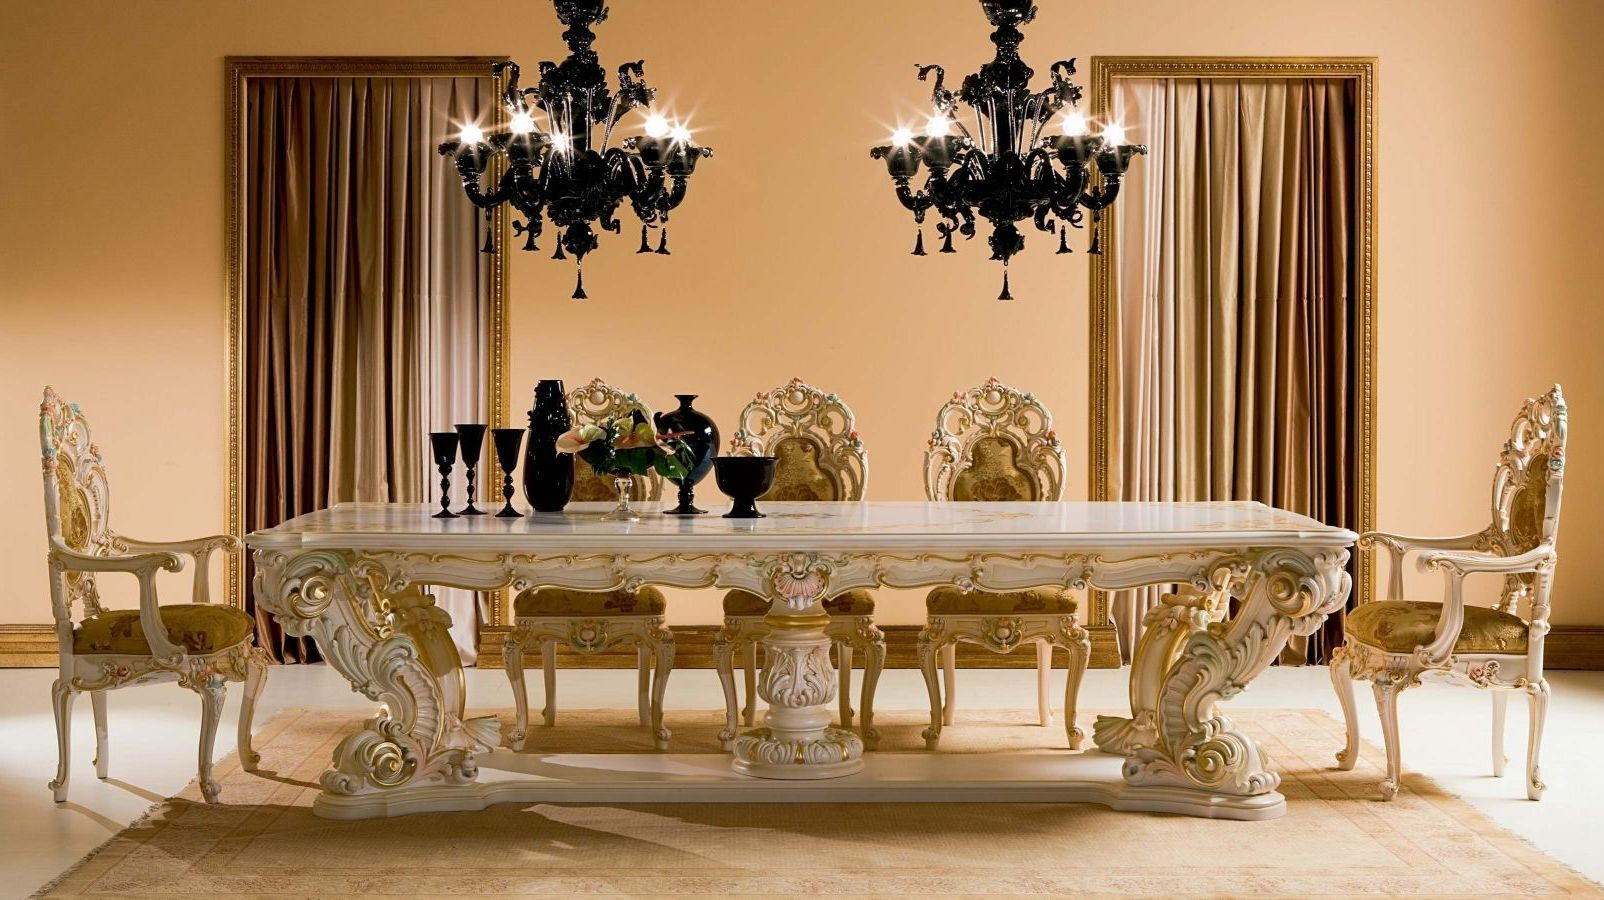 High Quality White Dining Table With Luxury Look Design For Dining Room Http